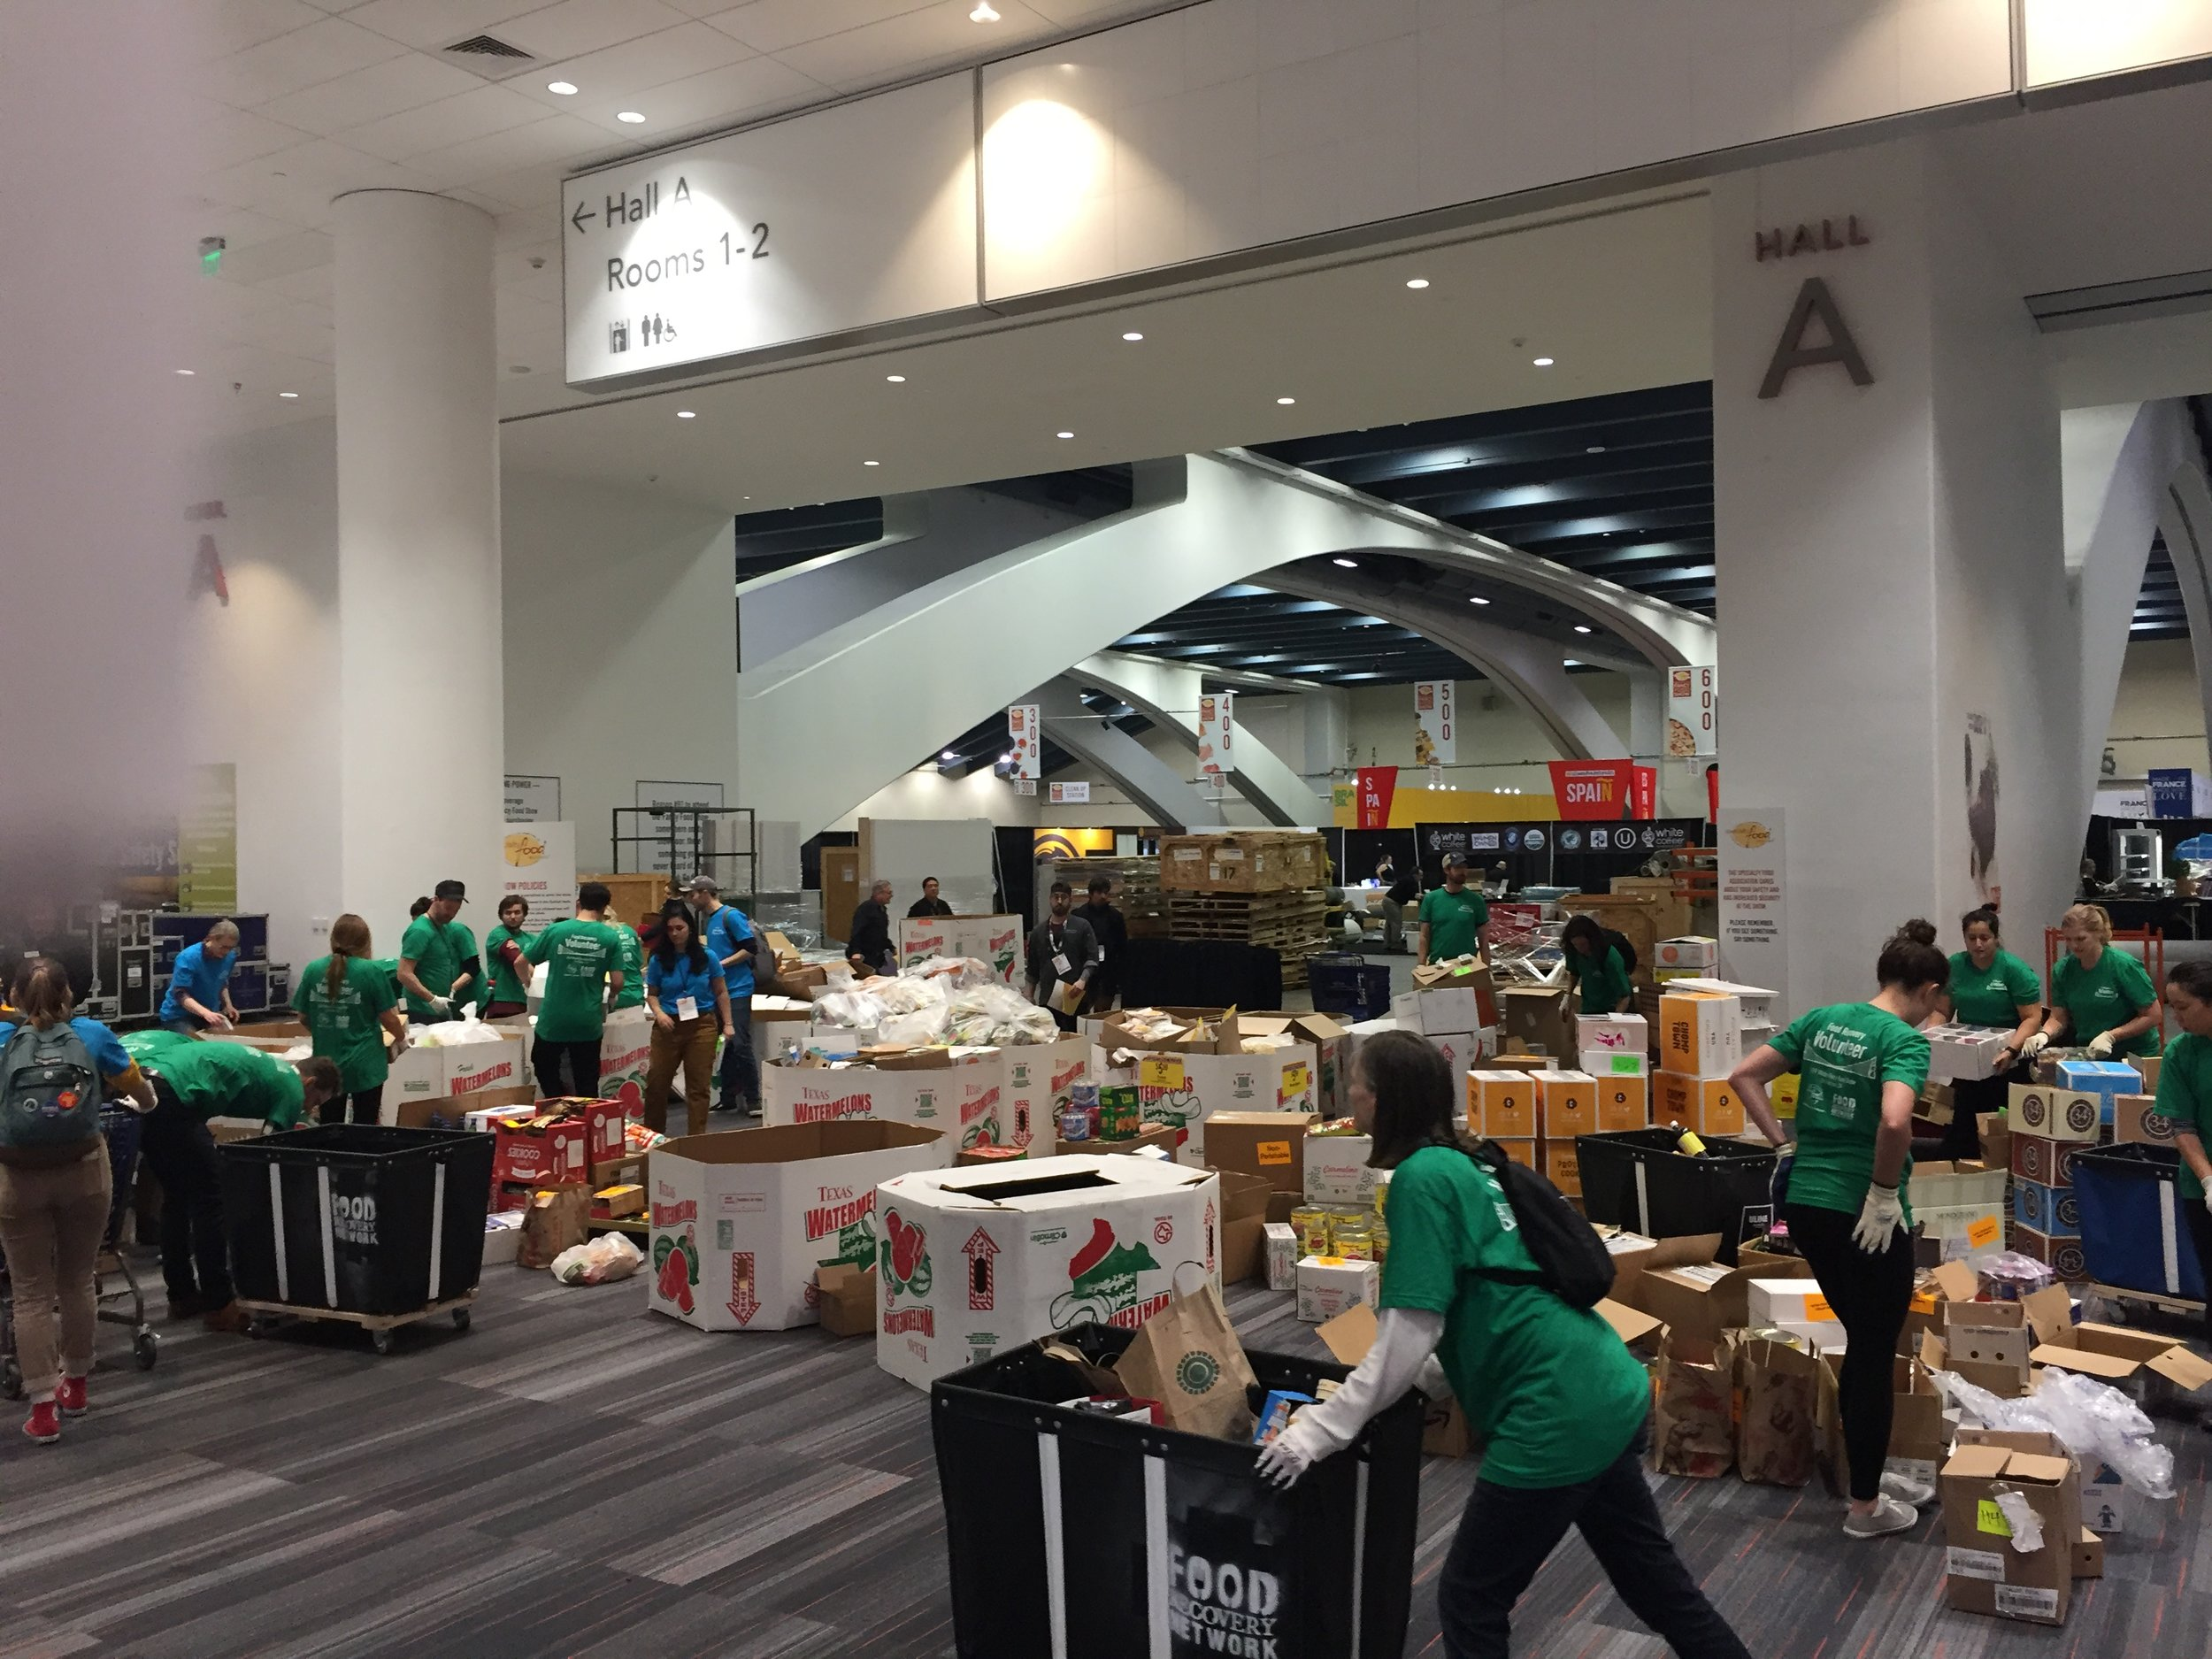 Volunteers bring recovered food from exhibit booths to consolidation zones, where food is packed into pallets for delivery to Delancey Street Foundation.